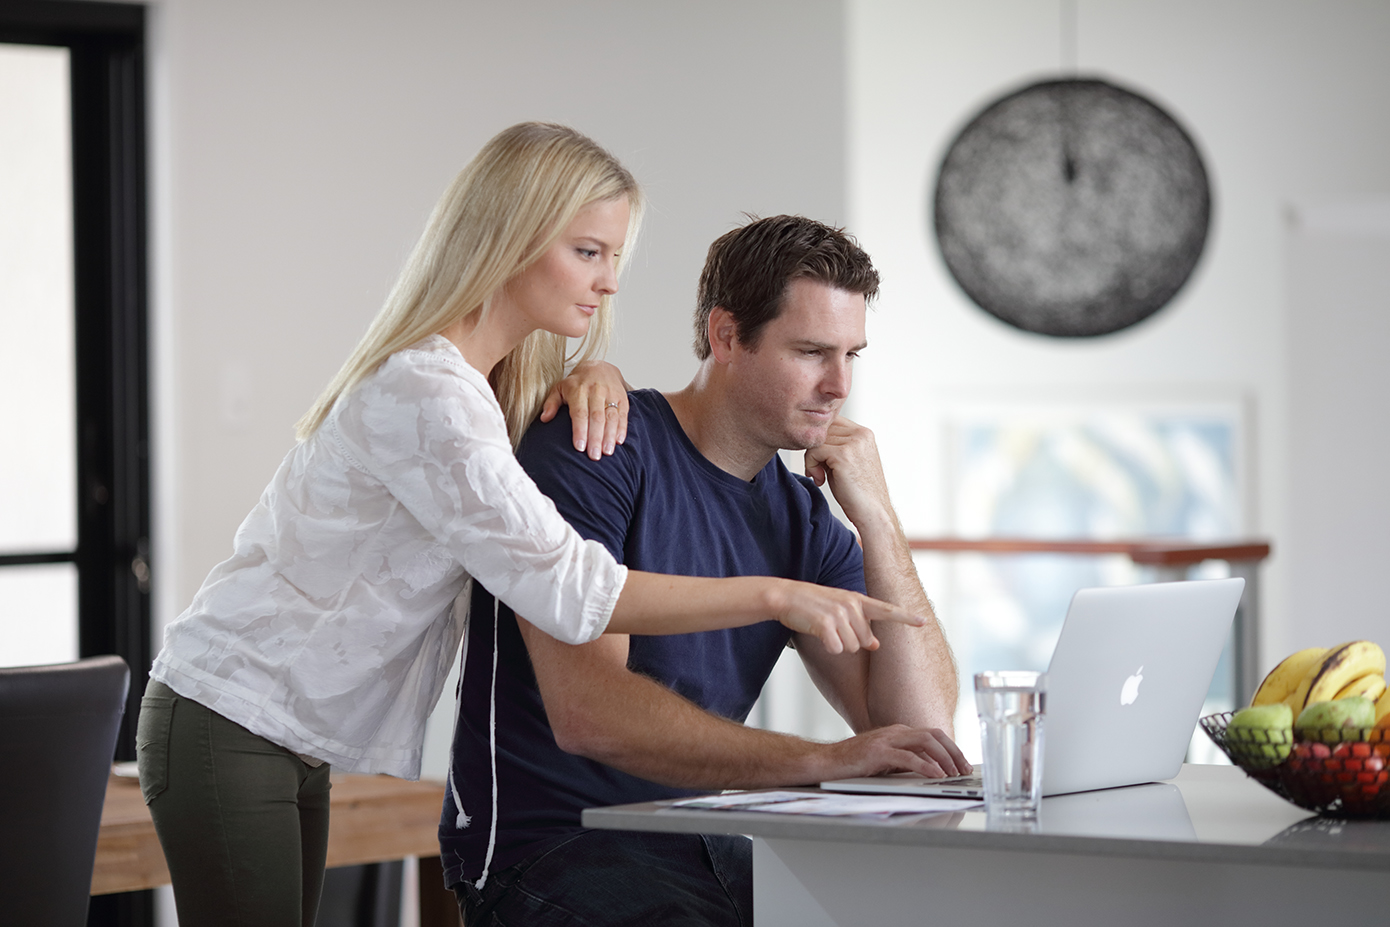 Woman and man looking at laptop computer on residential kitchen bench